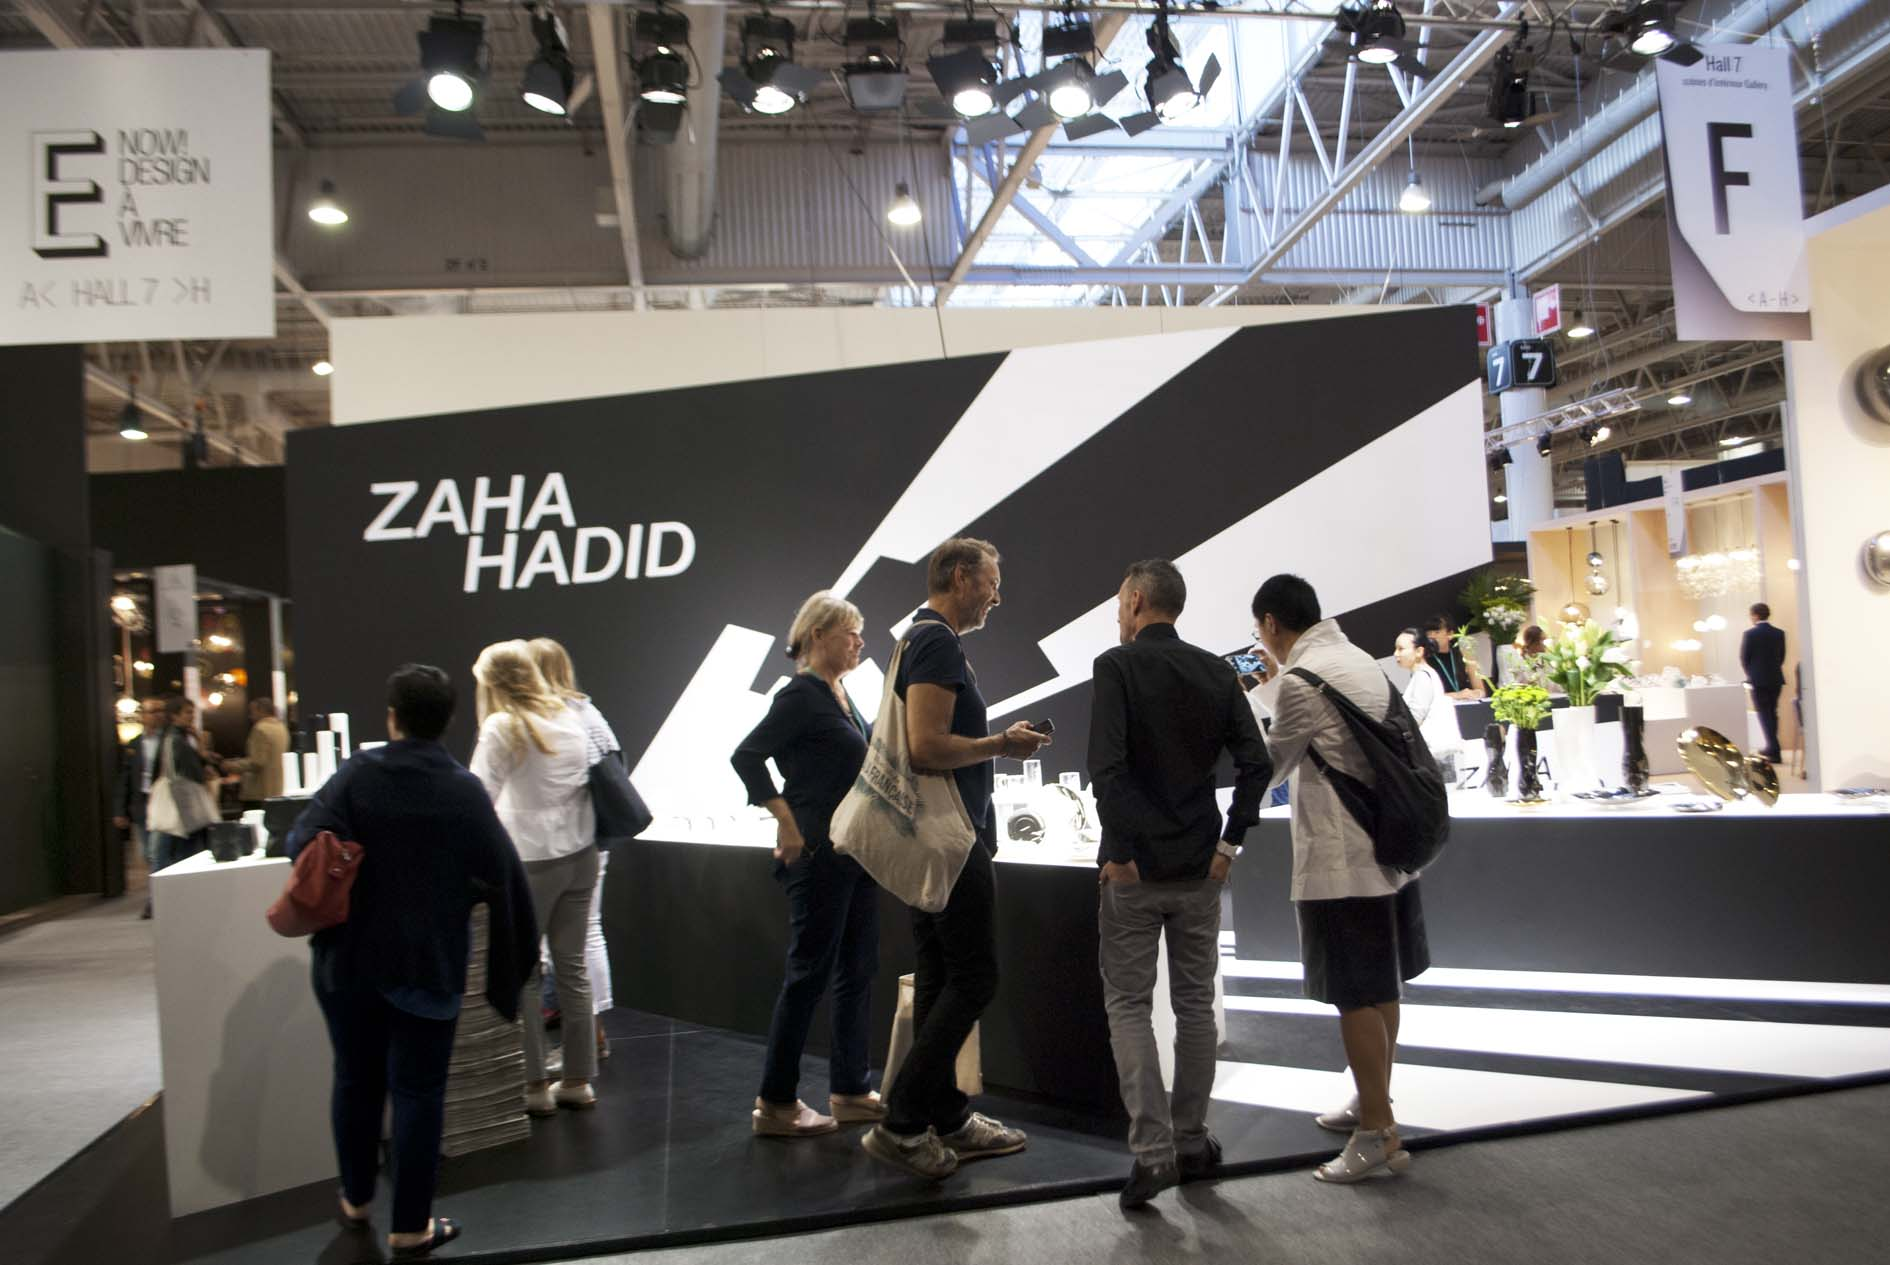 Zaha Hadid at Maison&Objet